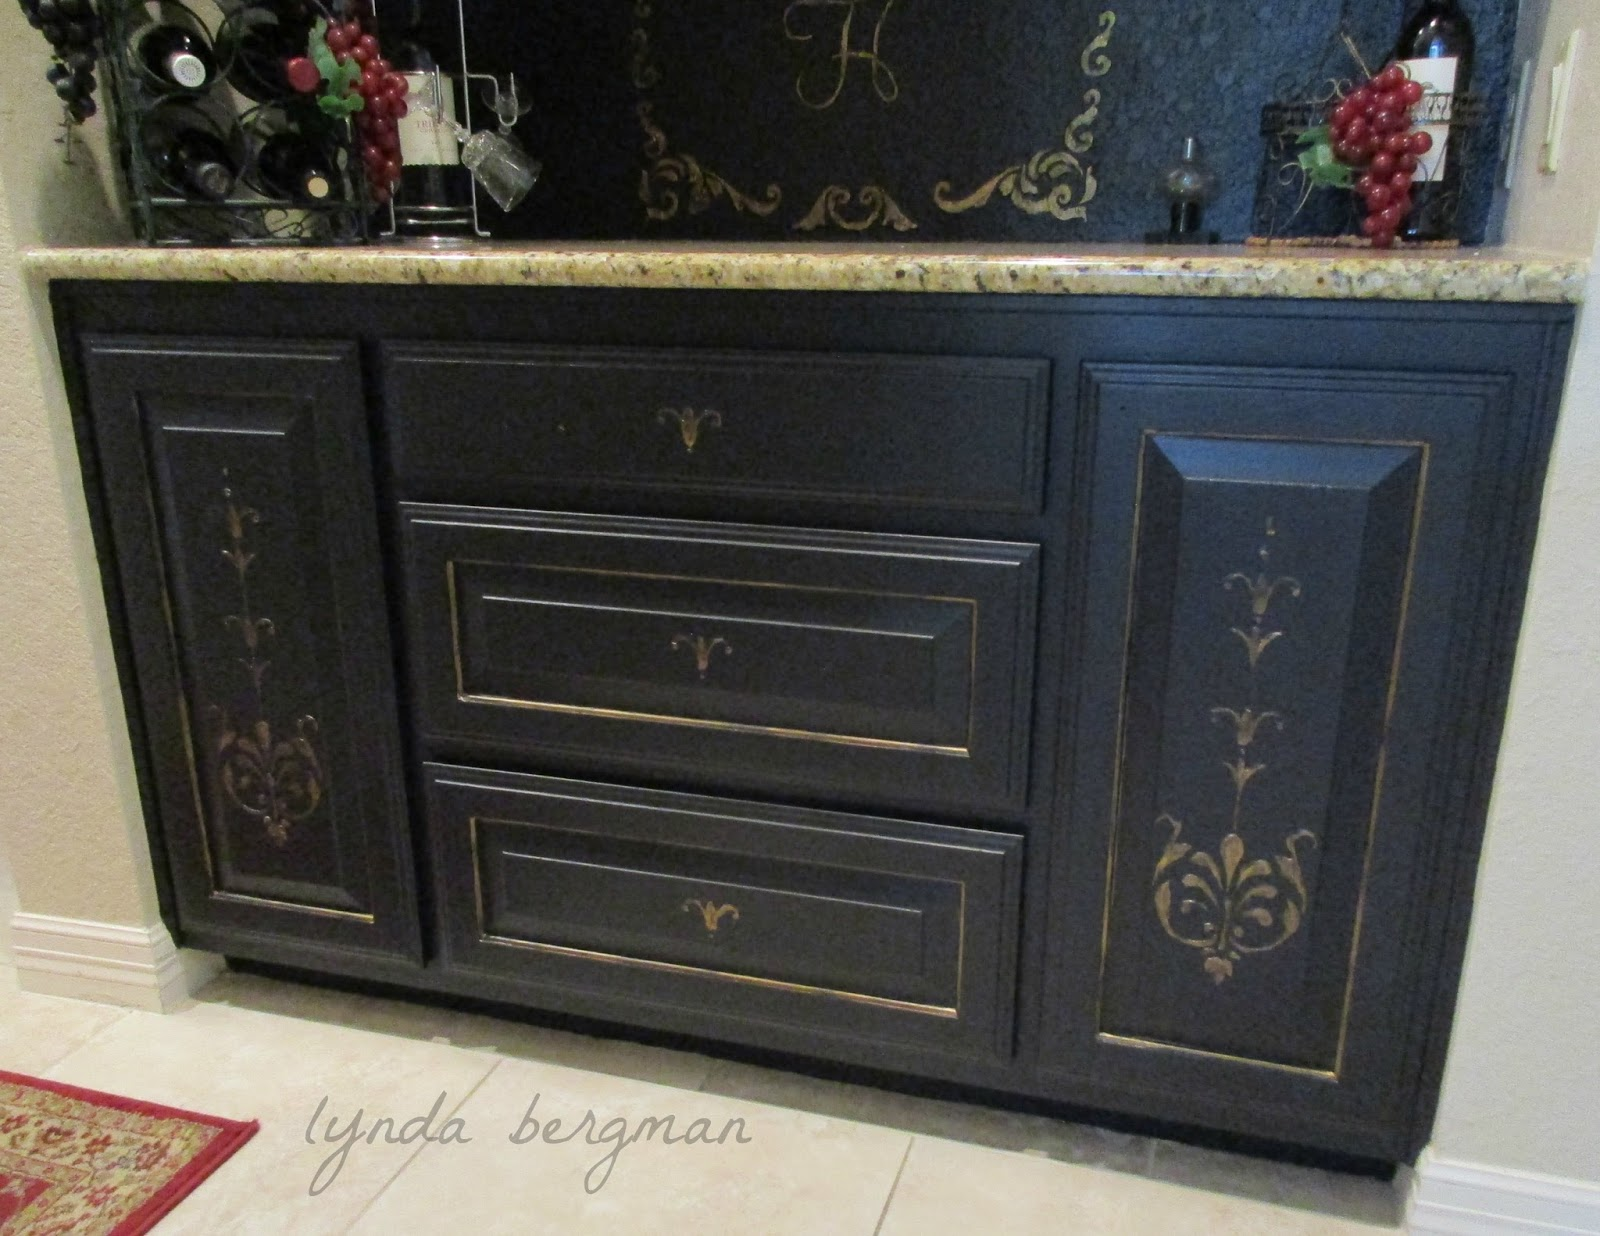 Lynda Bergman Decorative Artisan Painting Cabinets From